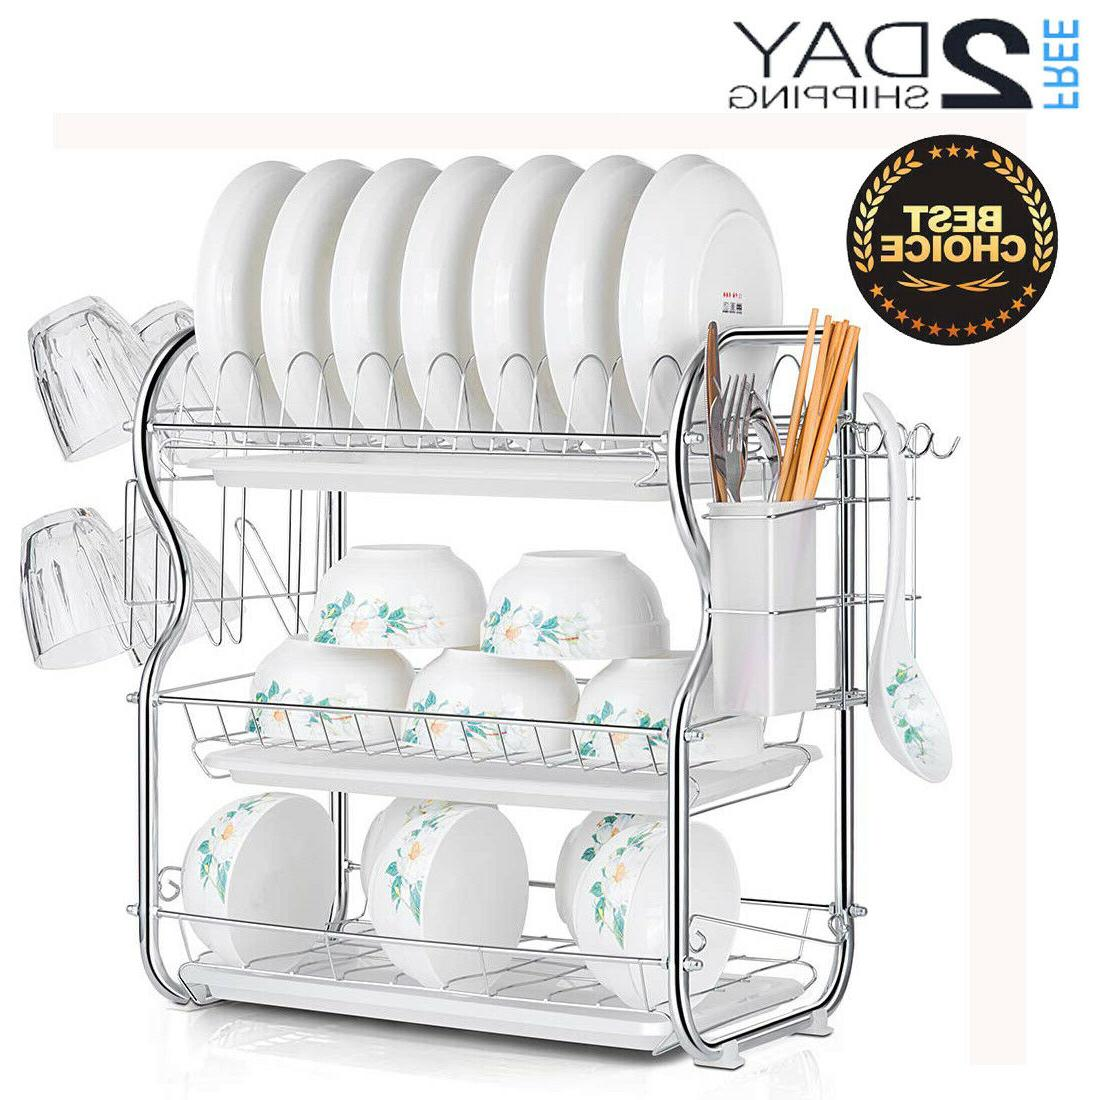 3 tiers dish drying drainer rack kitchen